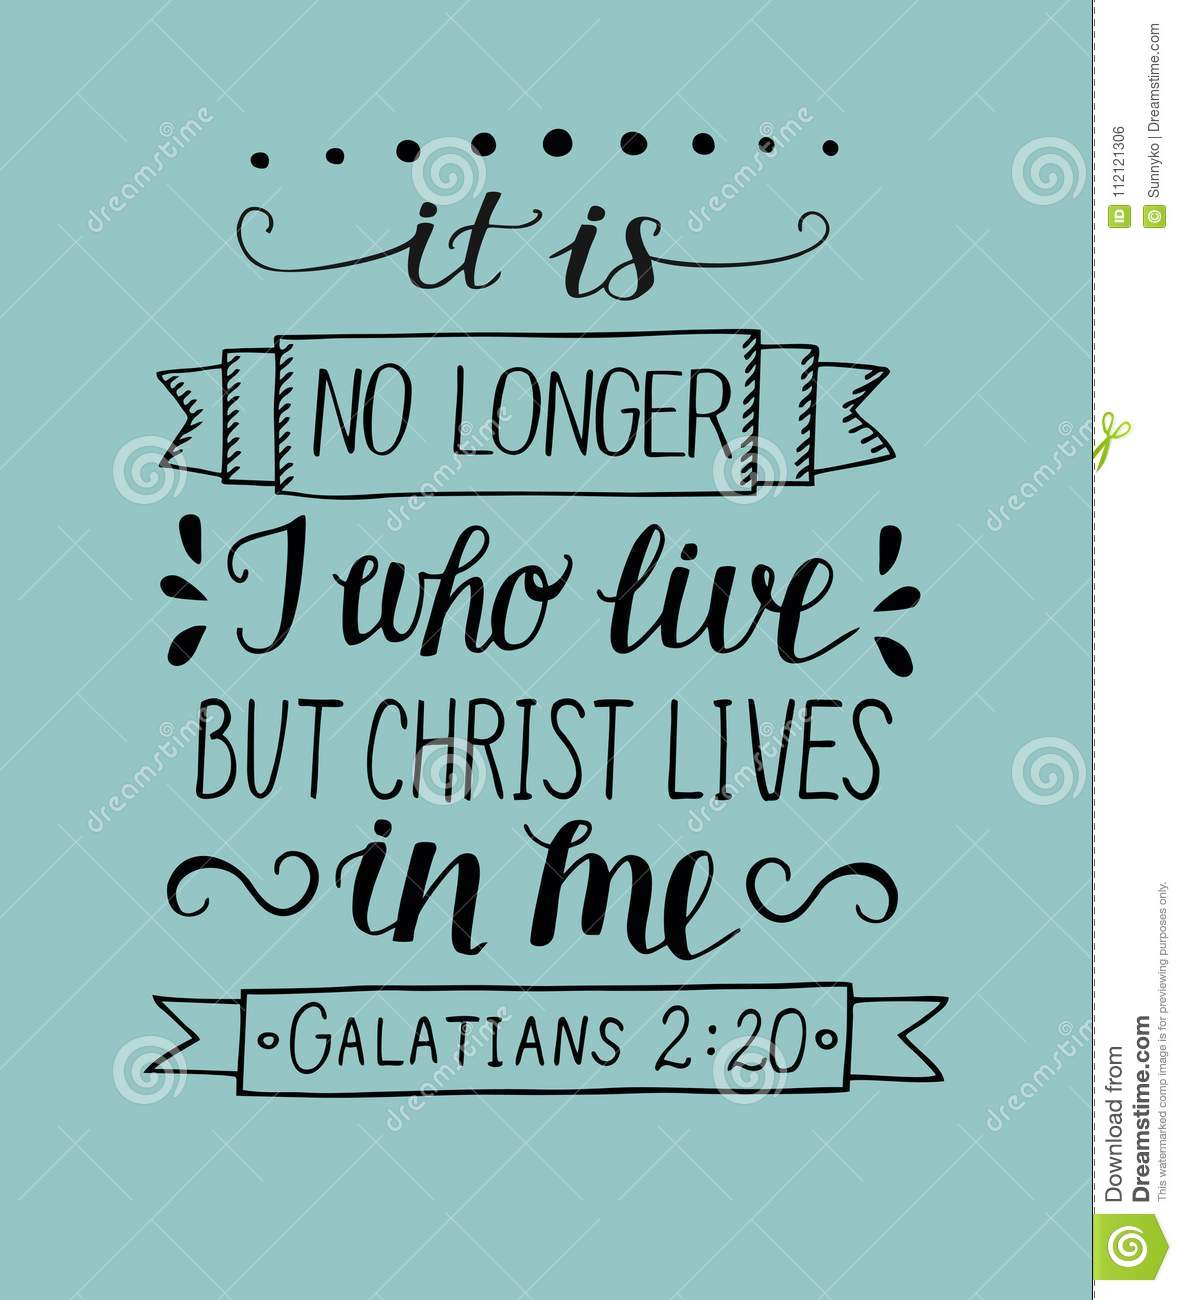 Quotes Deliverance Christian